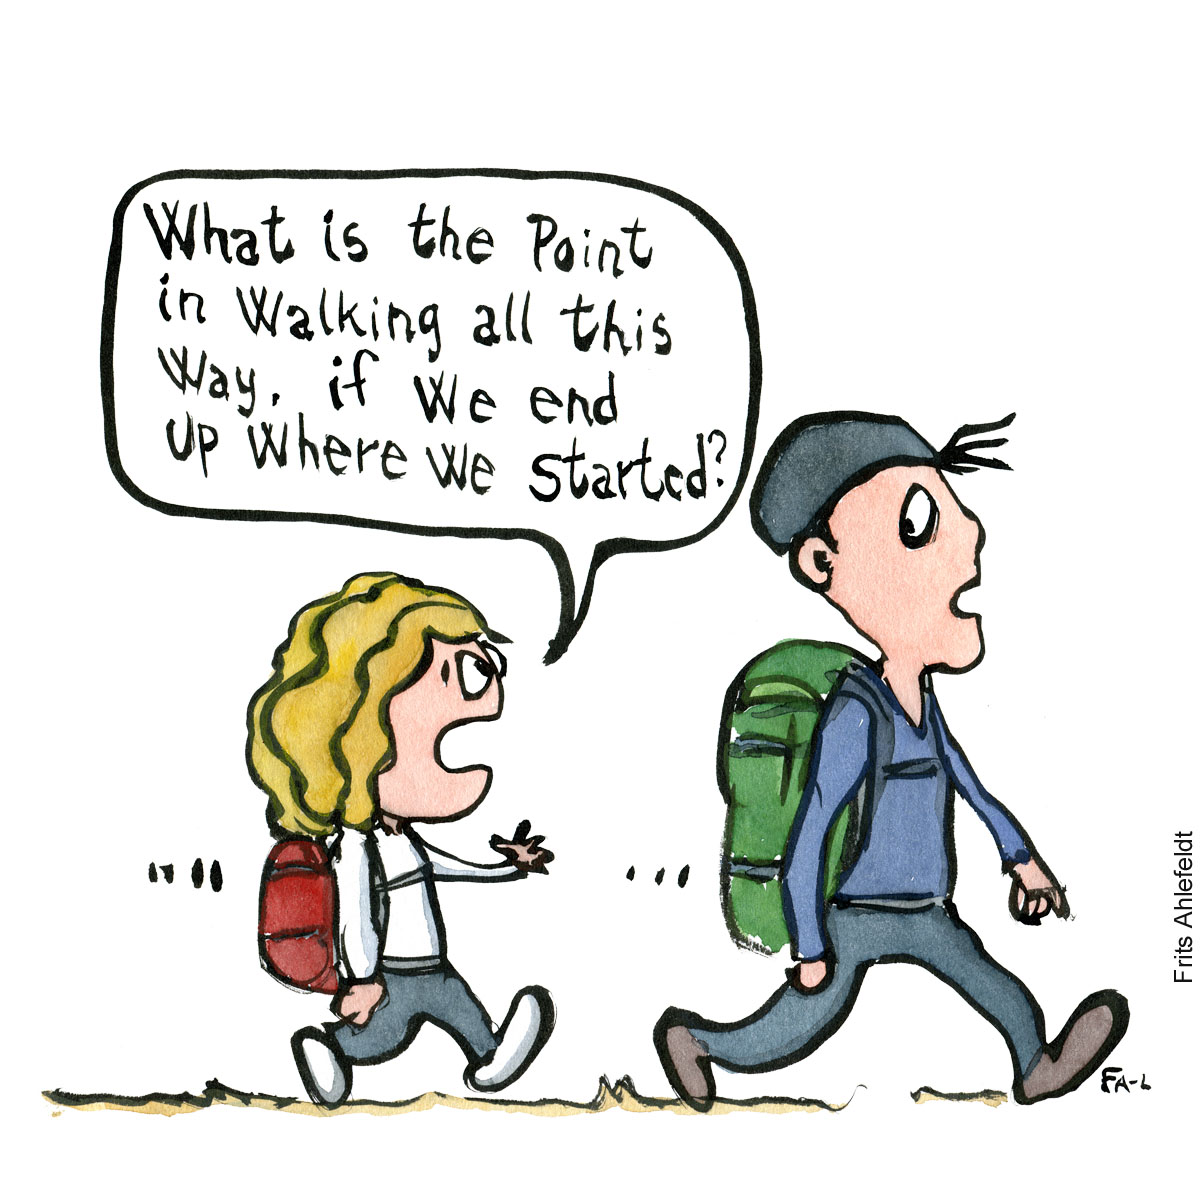 Two hikers walking, one say what is the point in walking all this way if we end up where we started. Illustration by Frits Ahlefeldt